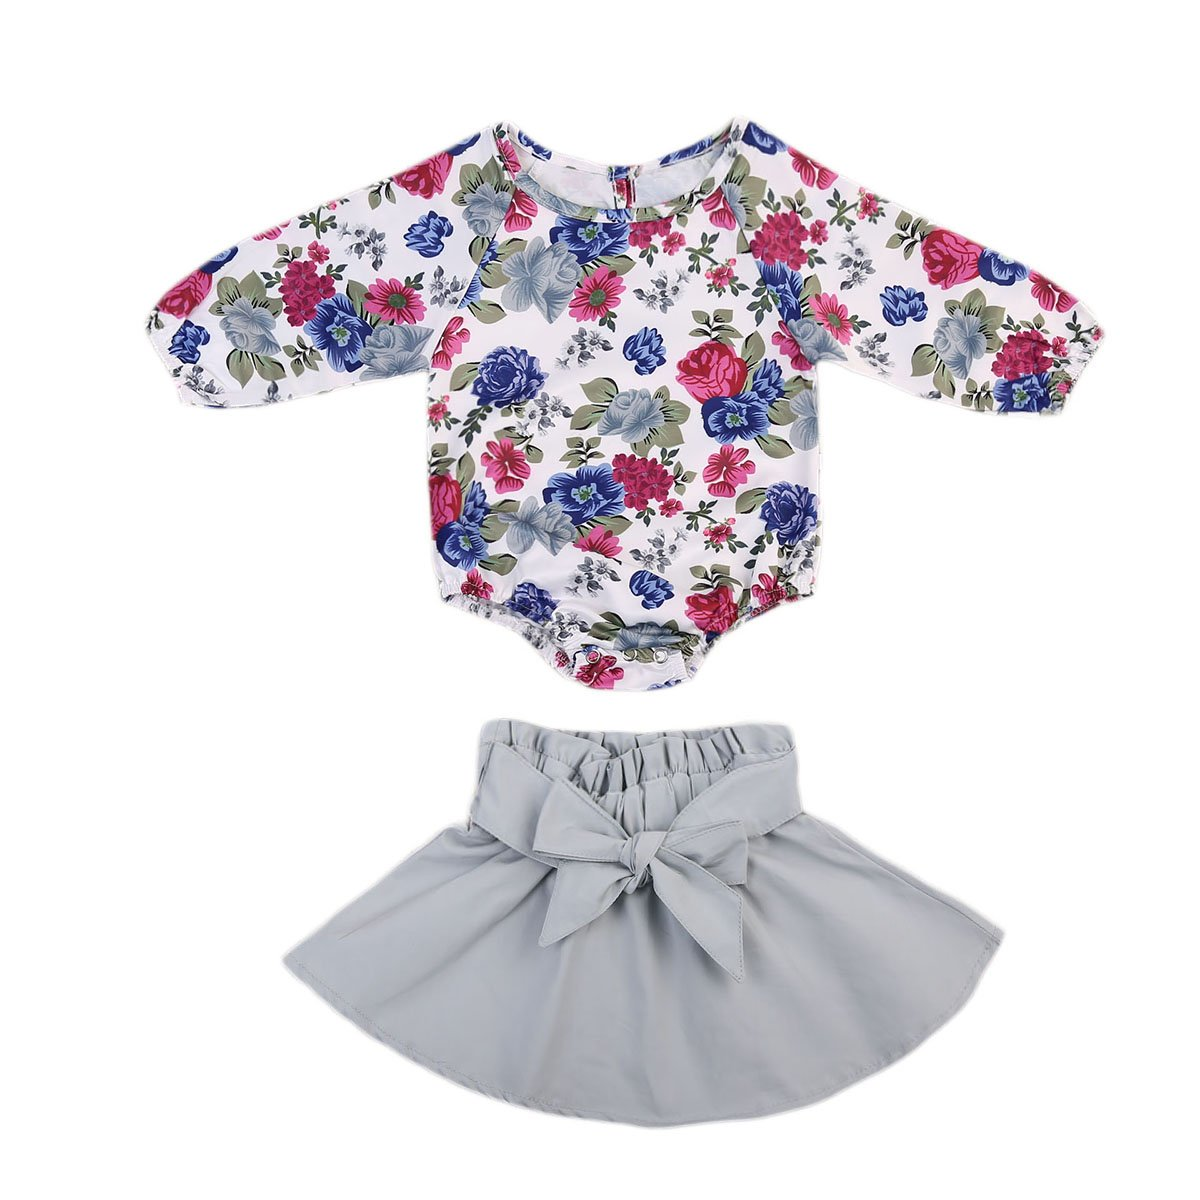 Mrs.Baker'Home Infant Baby Girl Long Sleeve Floral Romper Bowknot Dress Skirt Casual Outfit